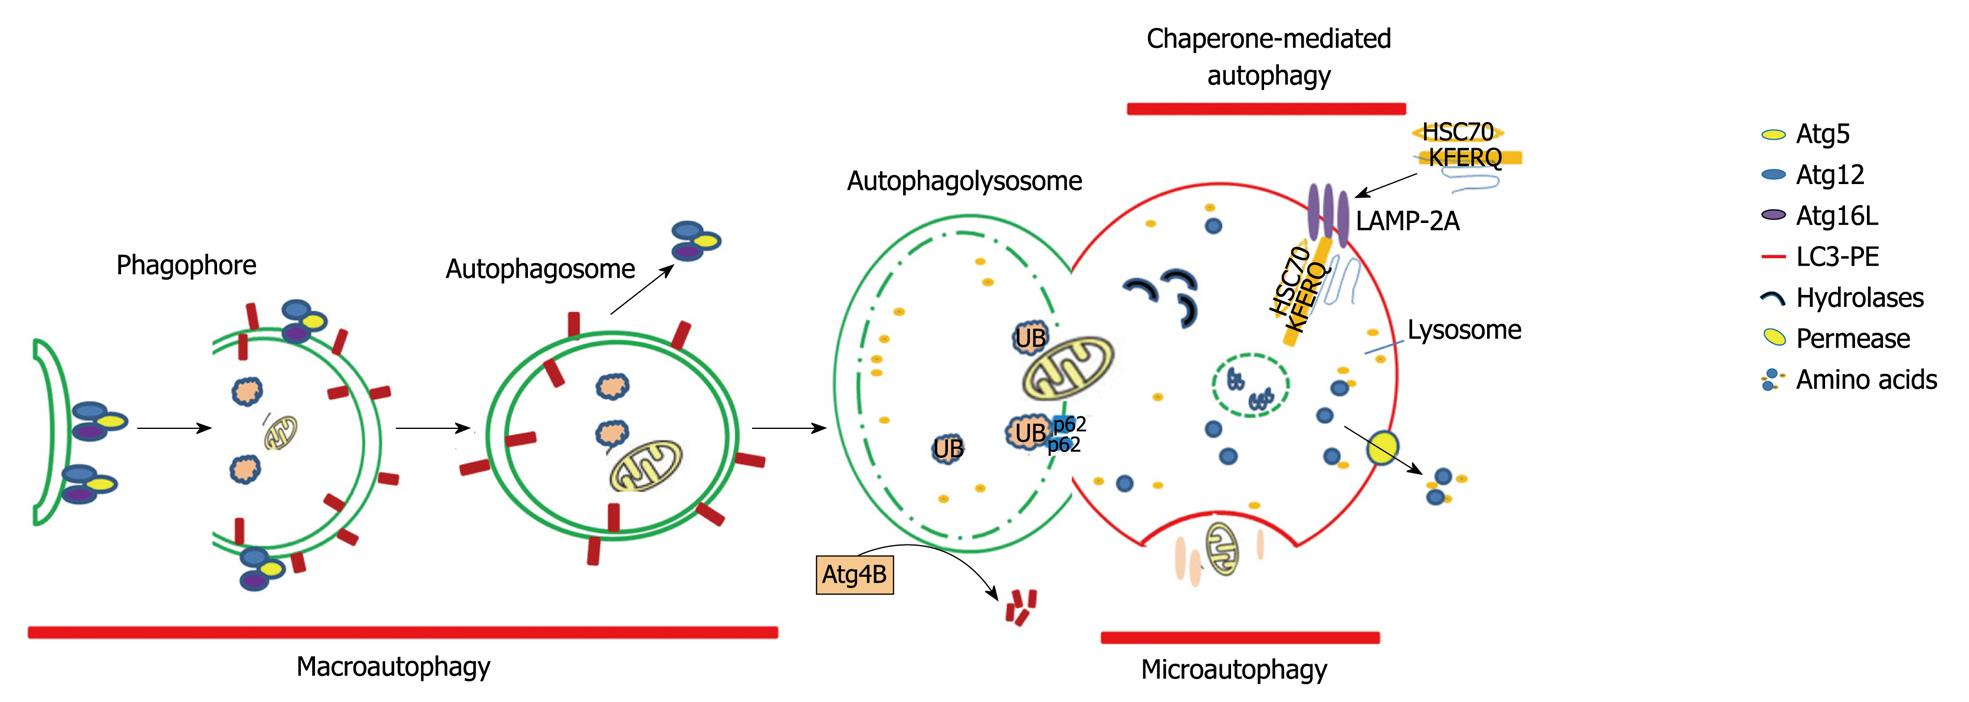 Role Of Autophagy In Liver Physiology And Pathophysiology